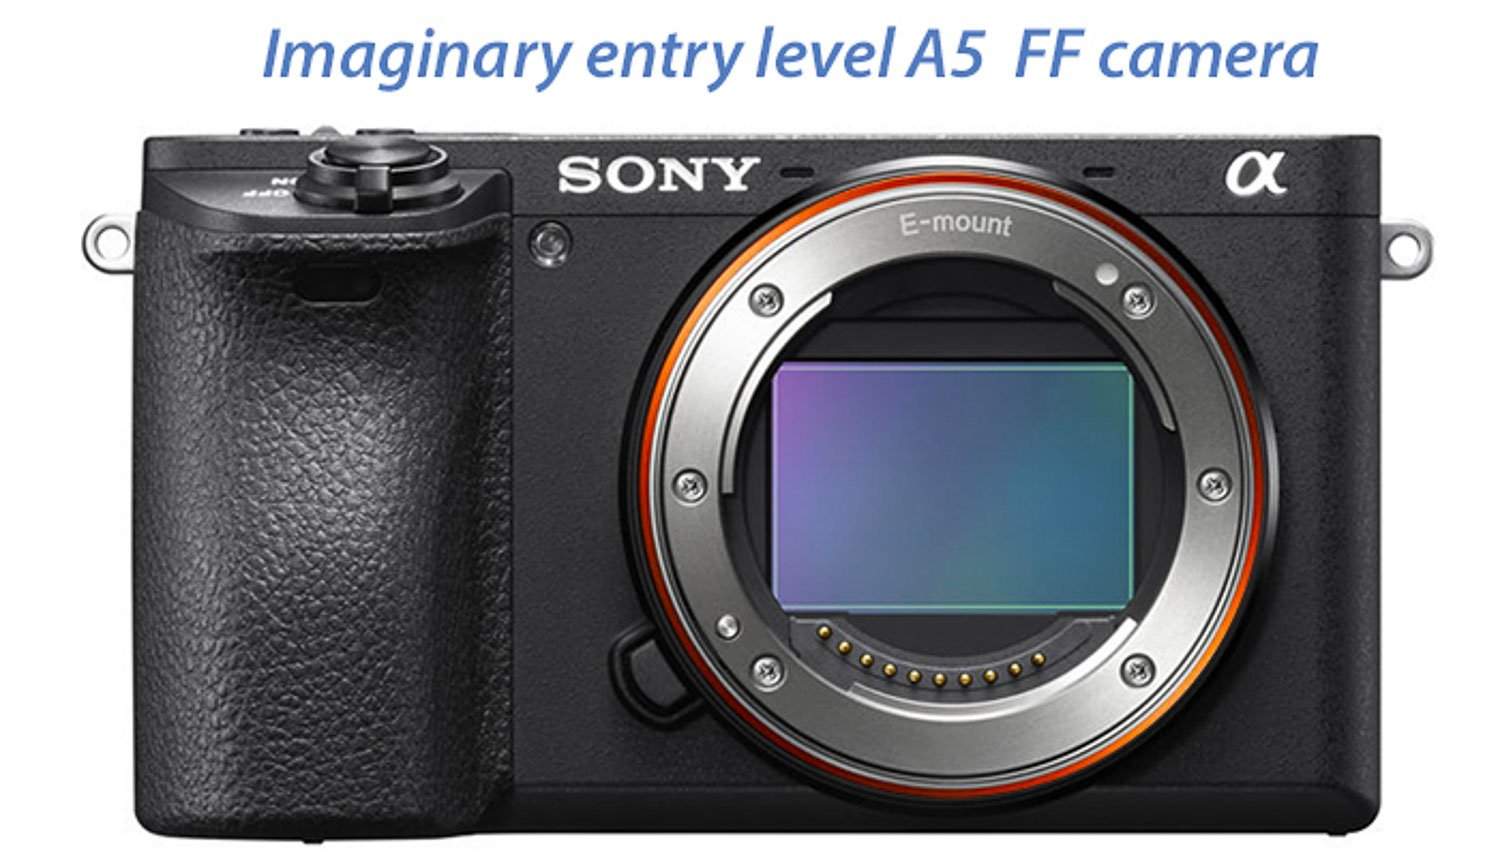 Sony A5 rumors